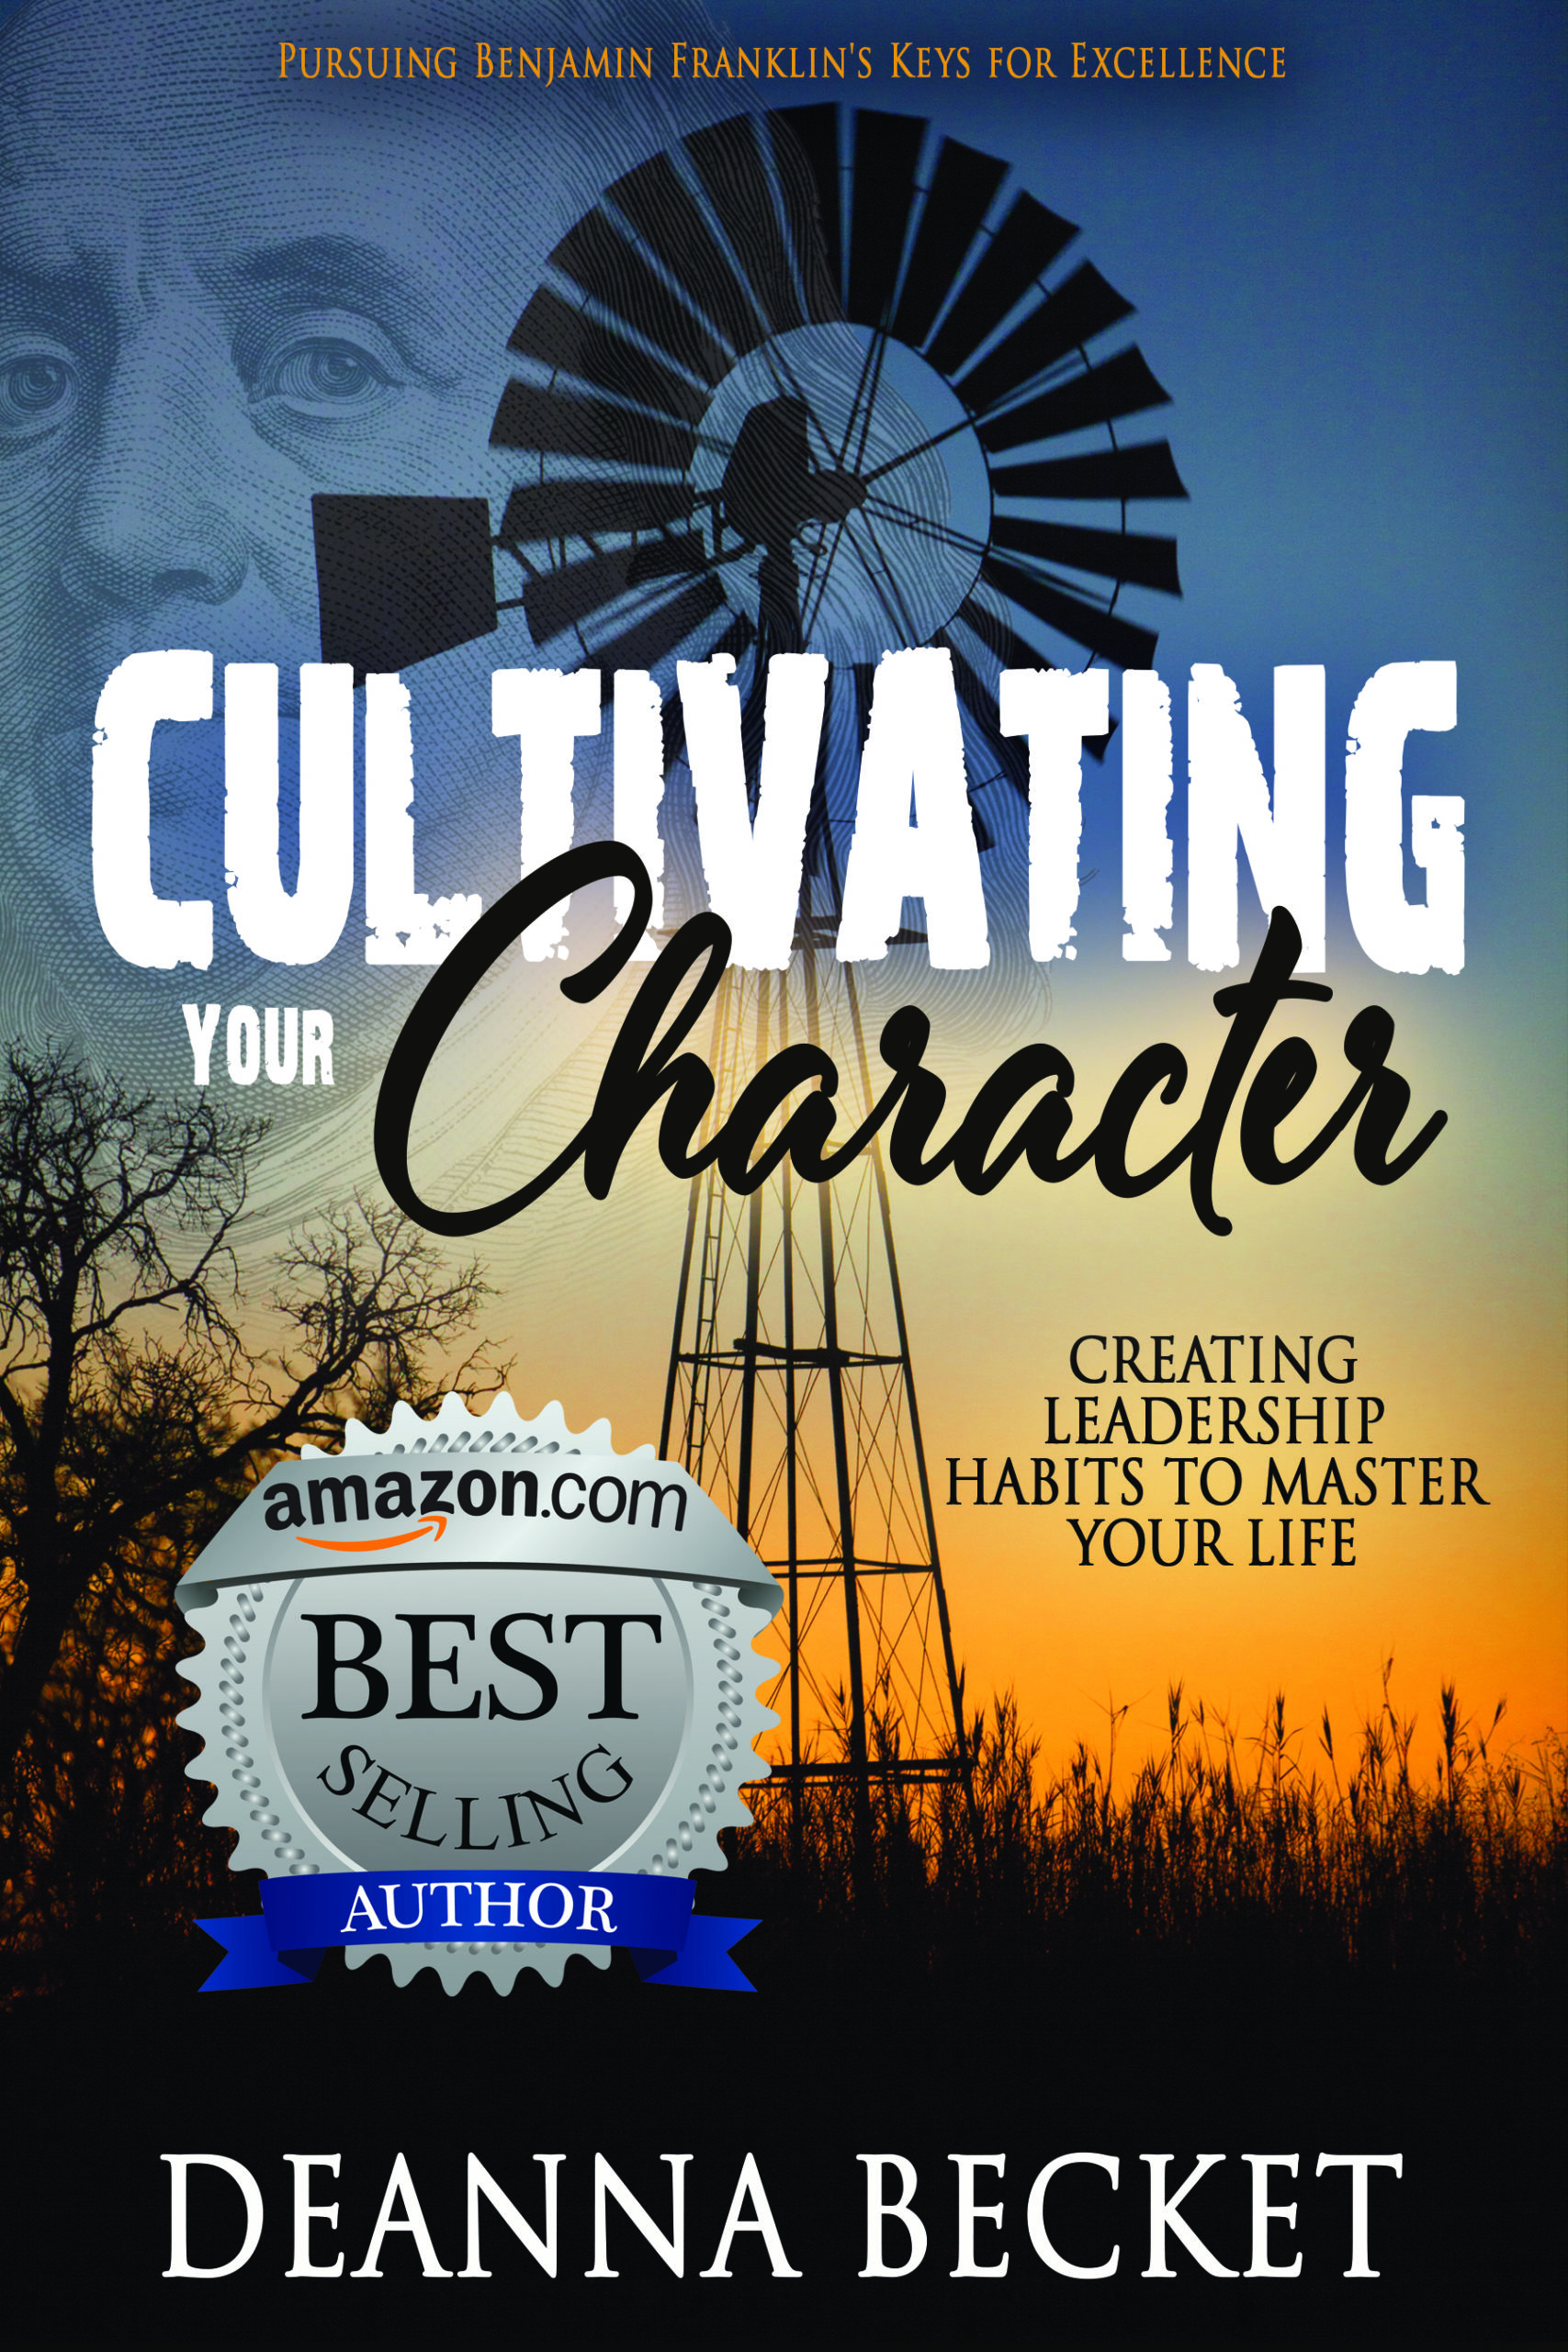 Deanna Becket - Amazon Best Selling Author - Cultivating Your Character book cover